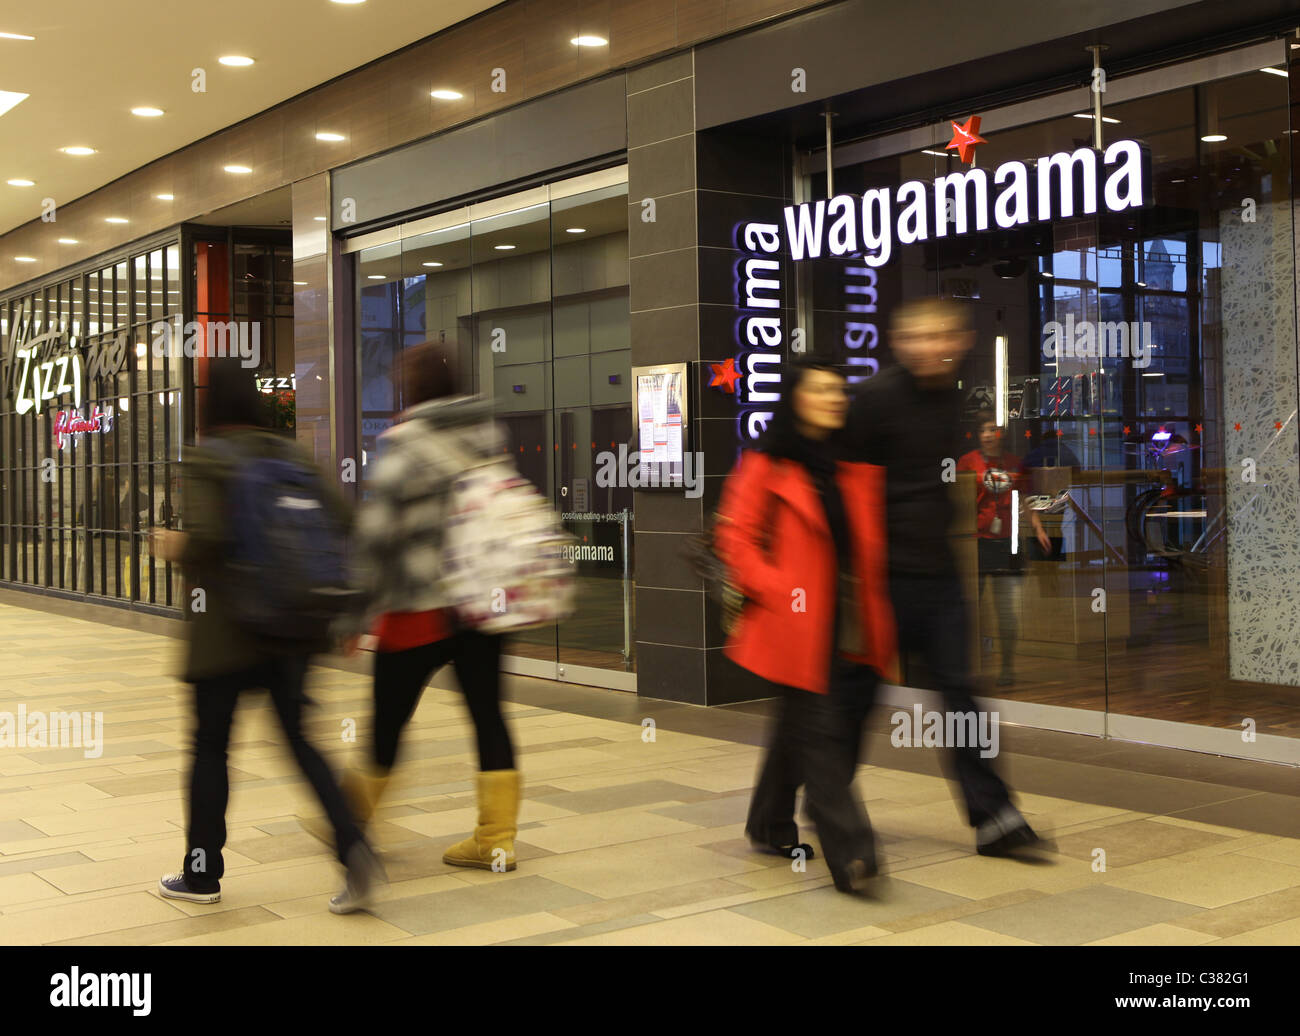 A branch of the food chain Wagamama in a shopping mall in the united kingdom - Stock Image